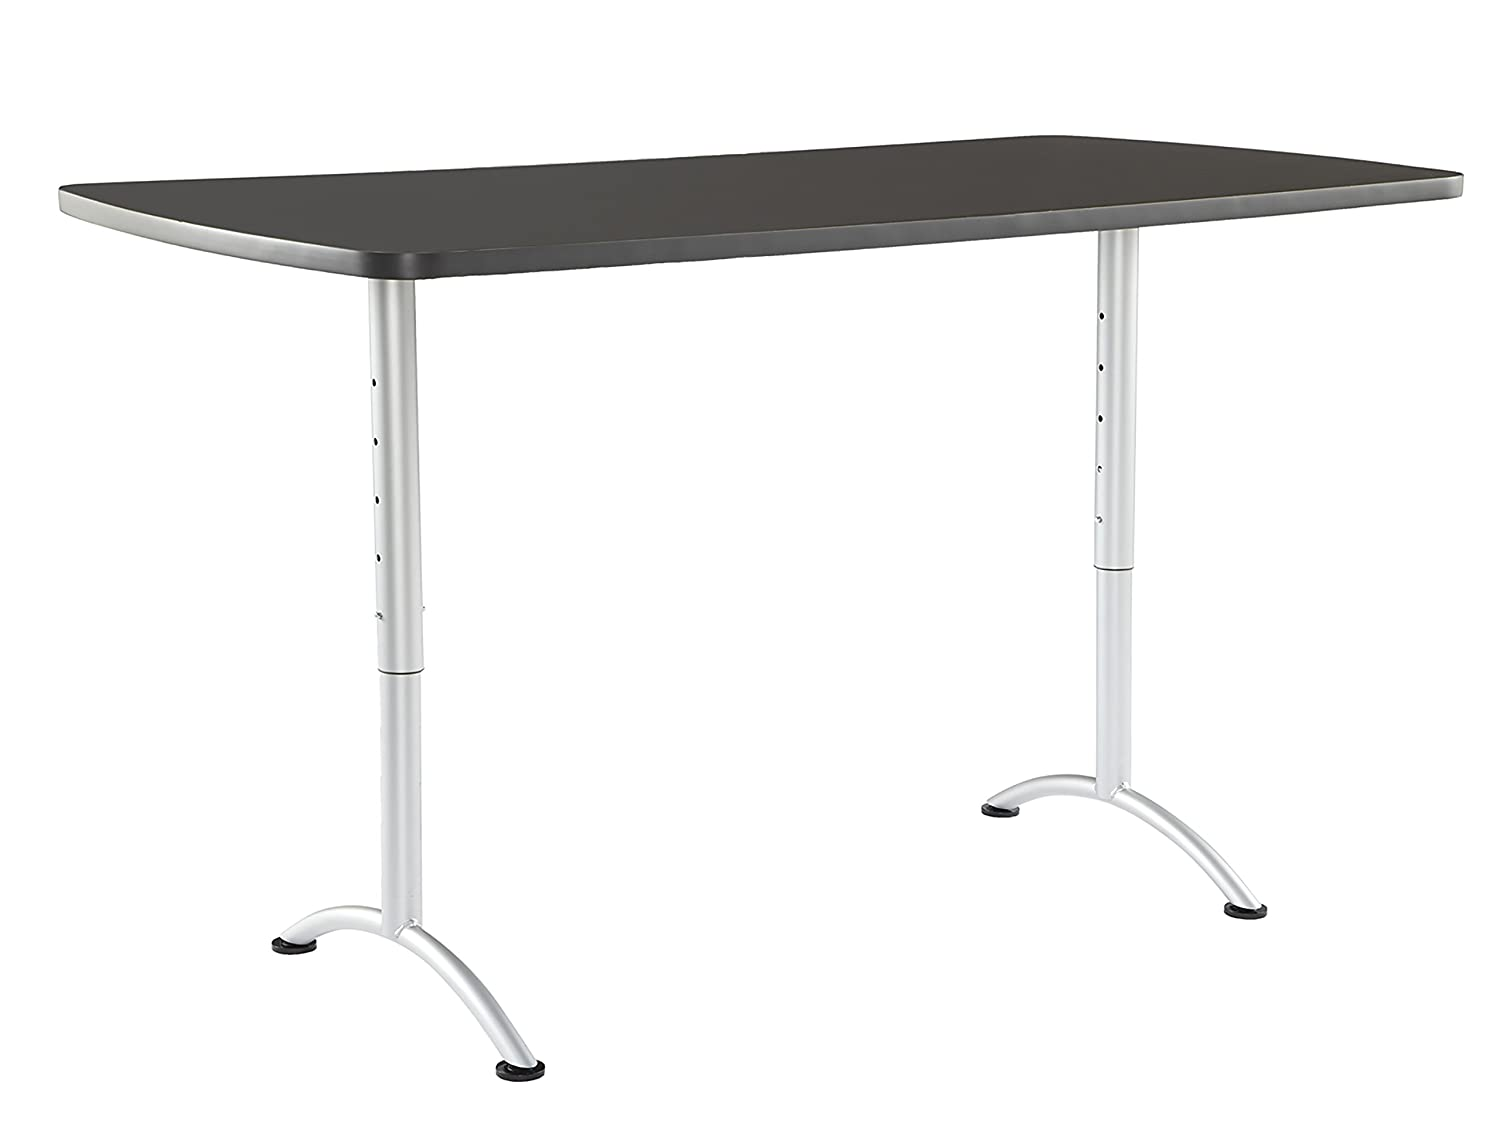 "Iceberg ICE69327 ARC 6-foot Adjustable Height Rectangular Conference Table, 36"" x 72"", Graphite/Silver Leg"